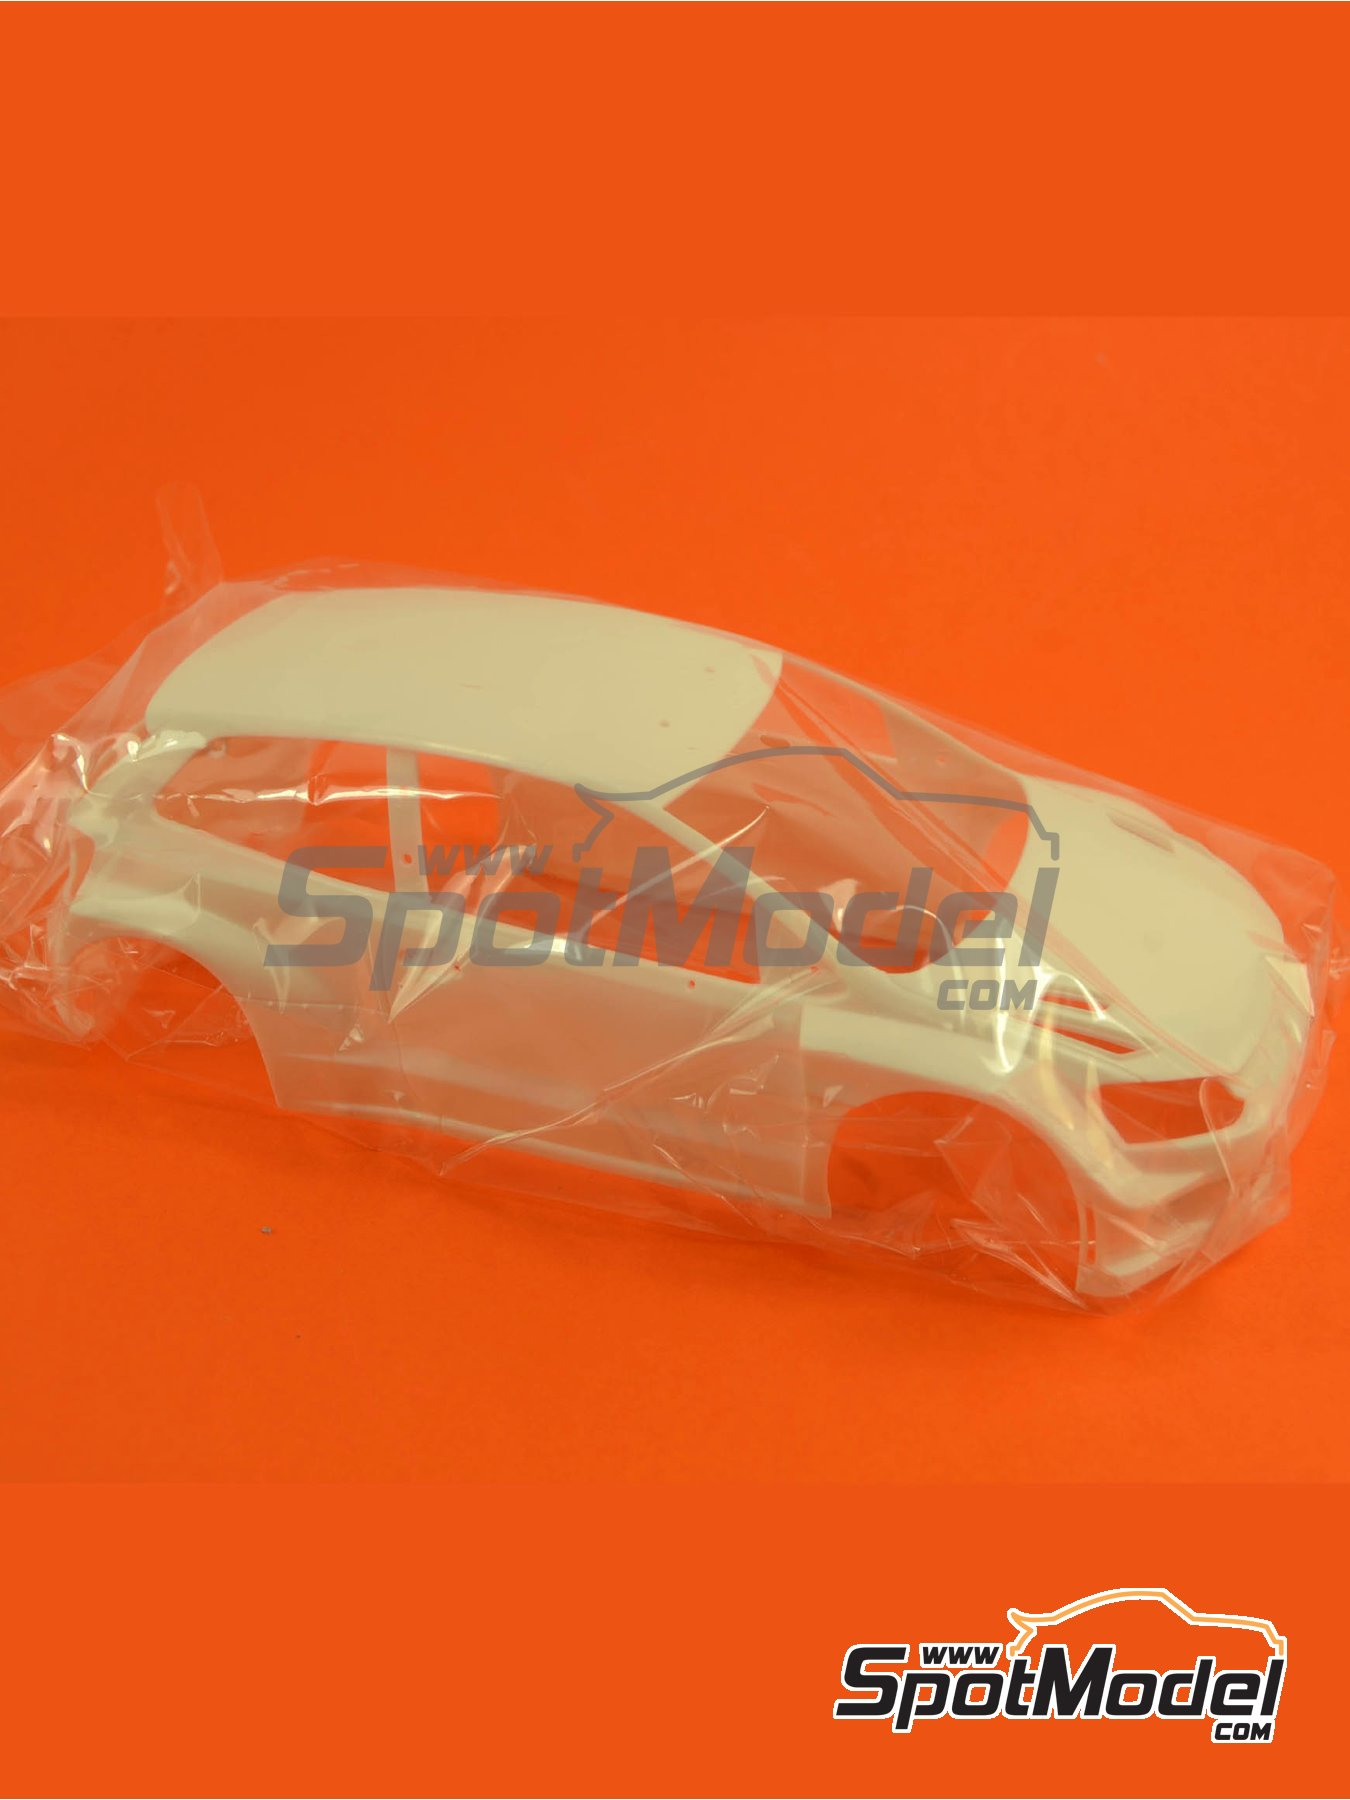 Volkswagen Polo R WRC: Body | Spare part in 1/24 scale manufactured by Belkits (ref.BEL005-BODY) image